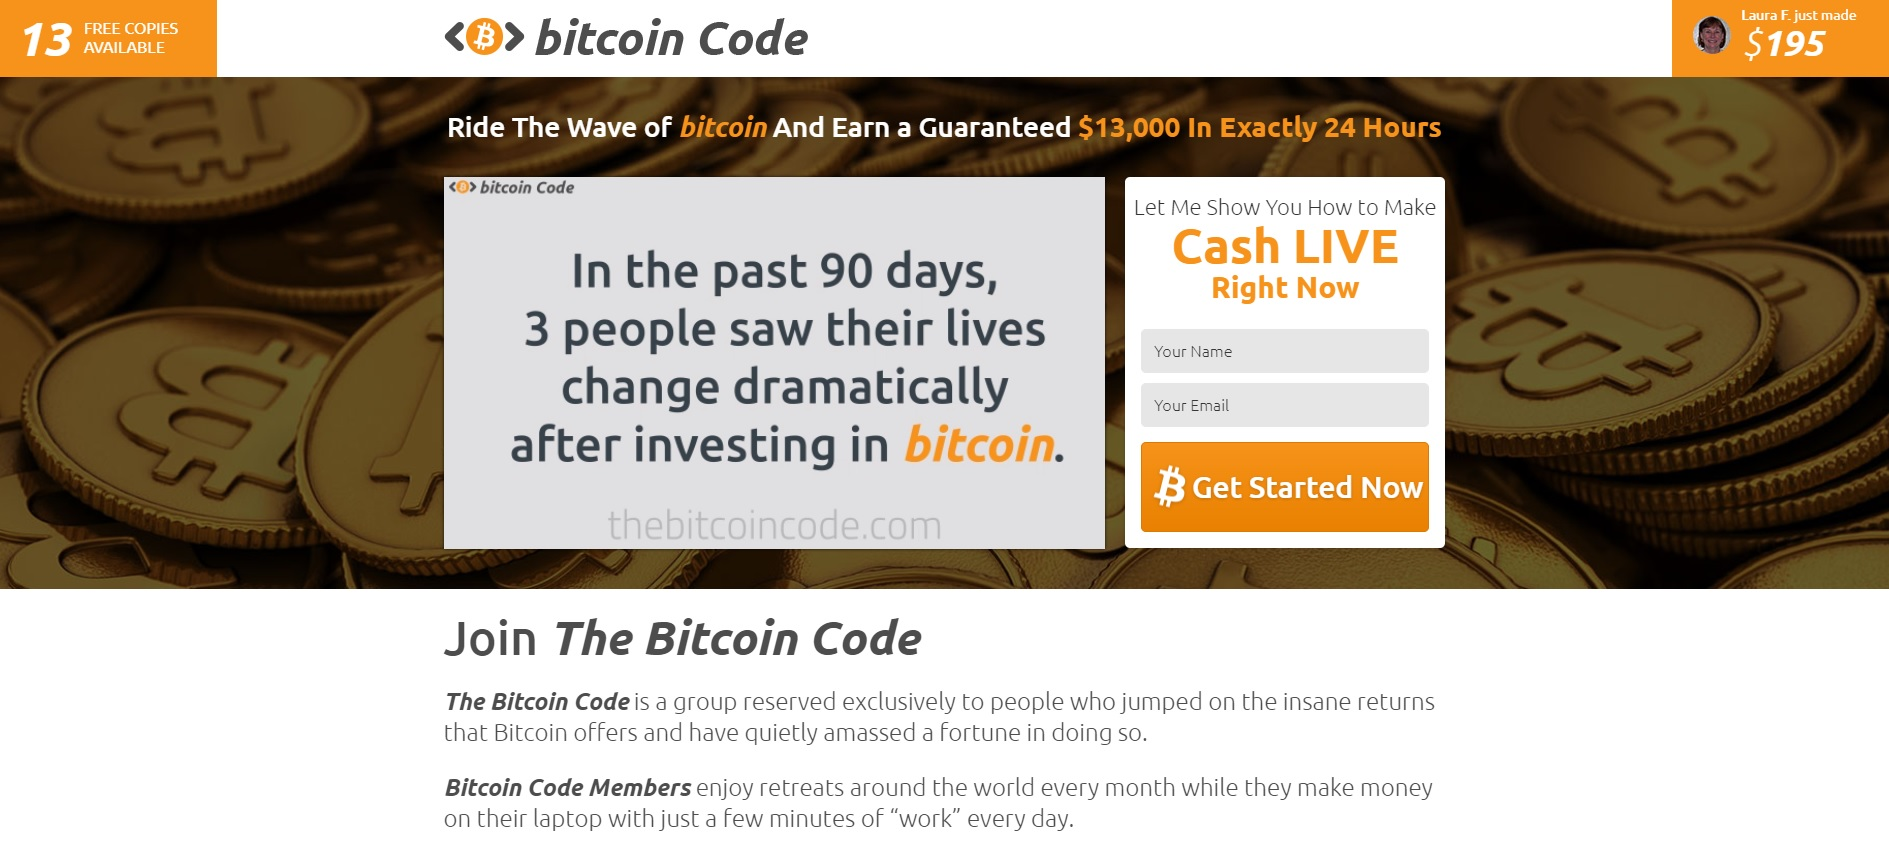 thebitcoincode.com - The Bitcoin Code Website